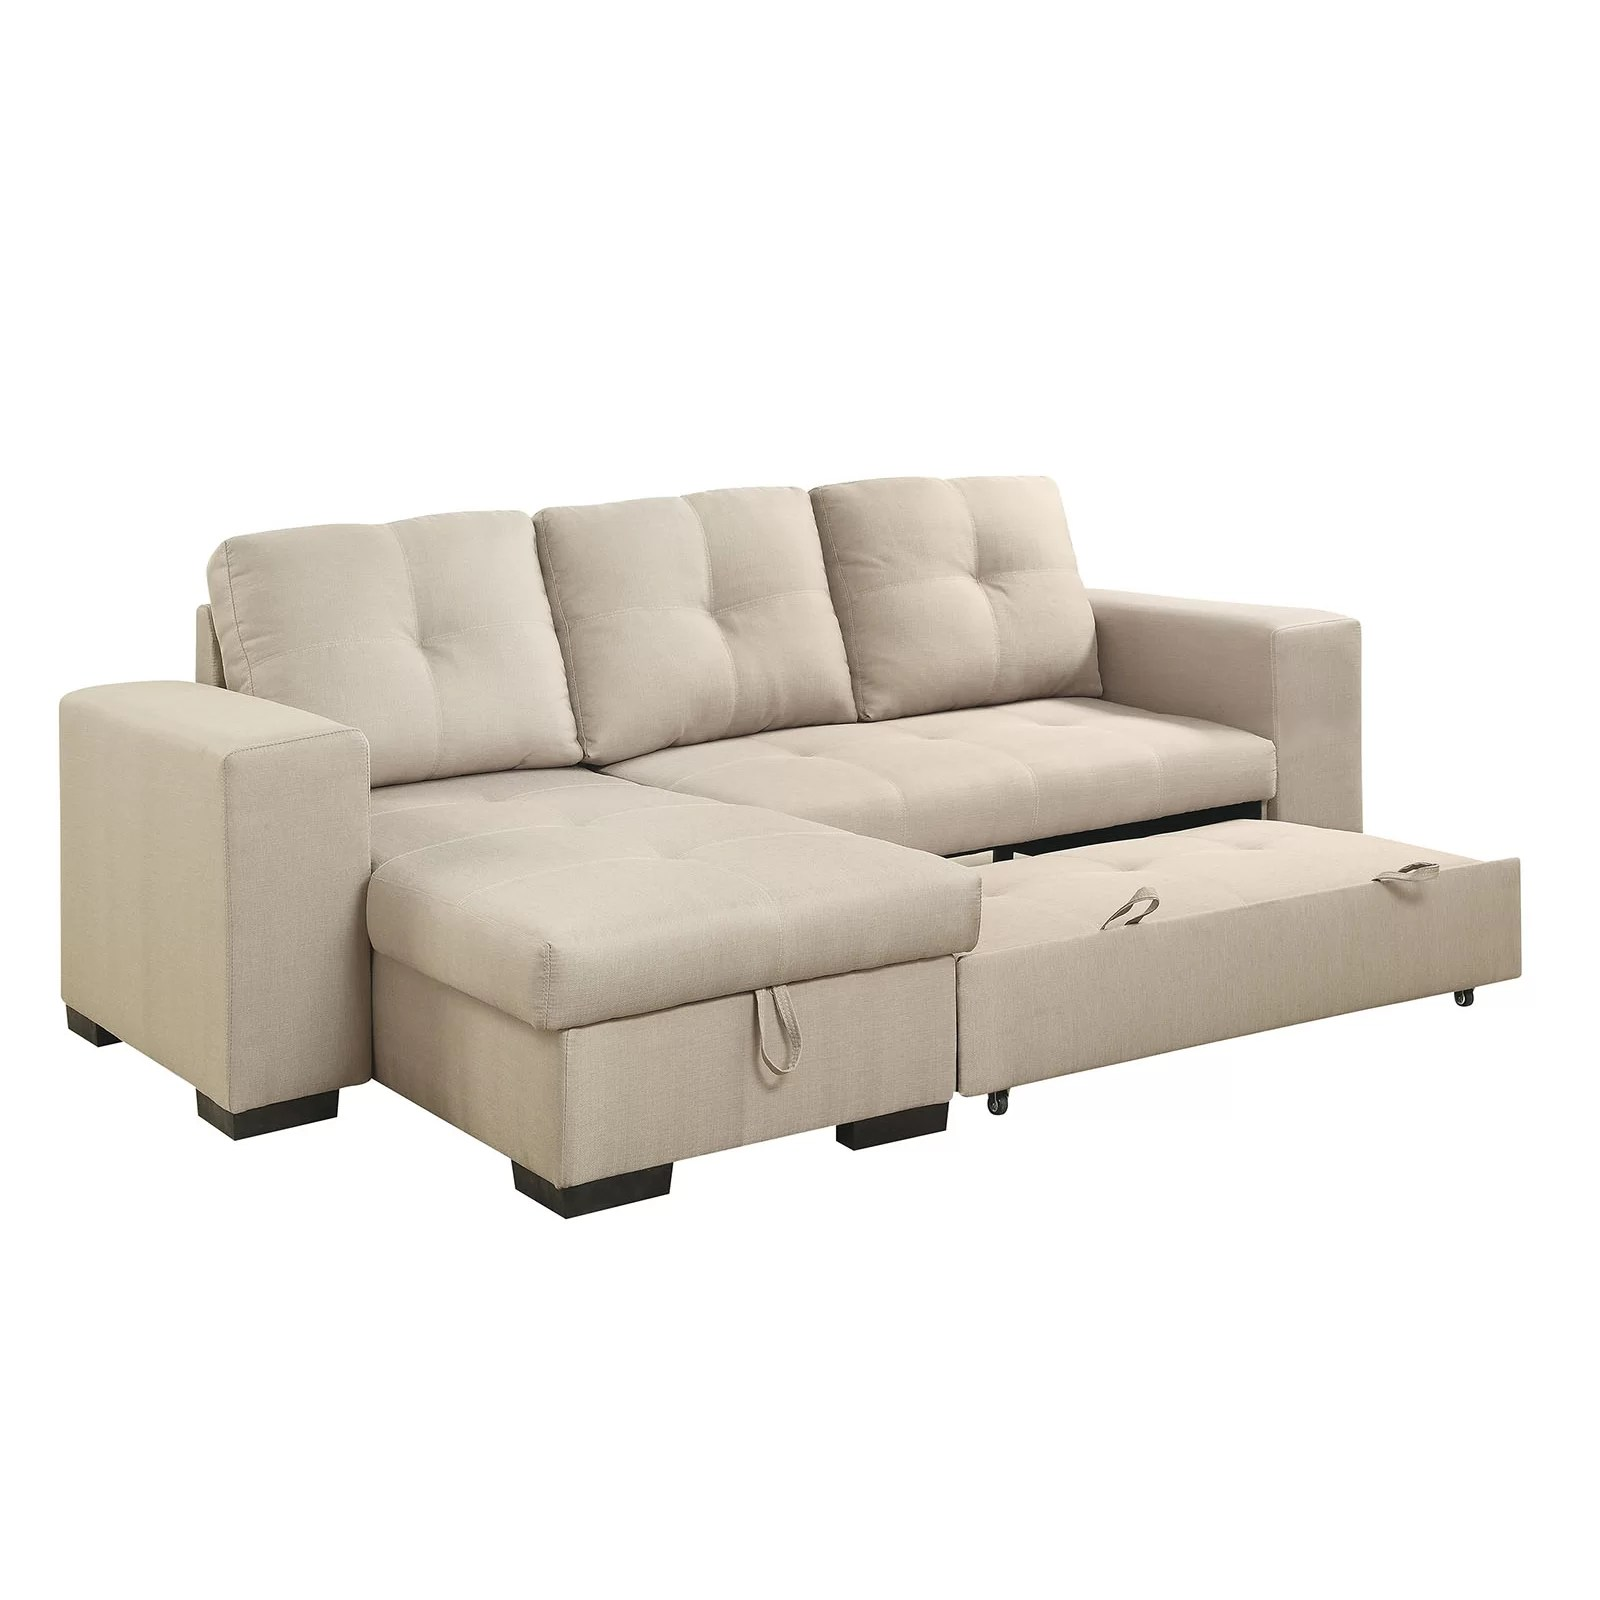 AJ Homes Studio Reversible Chaise Sleeper Sectional  Wayfair